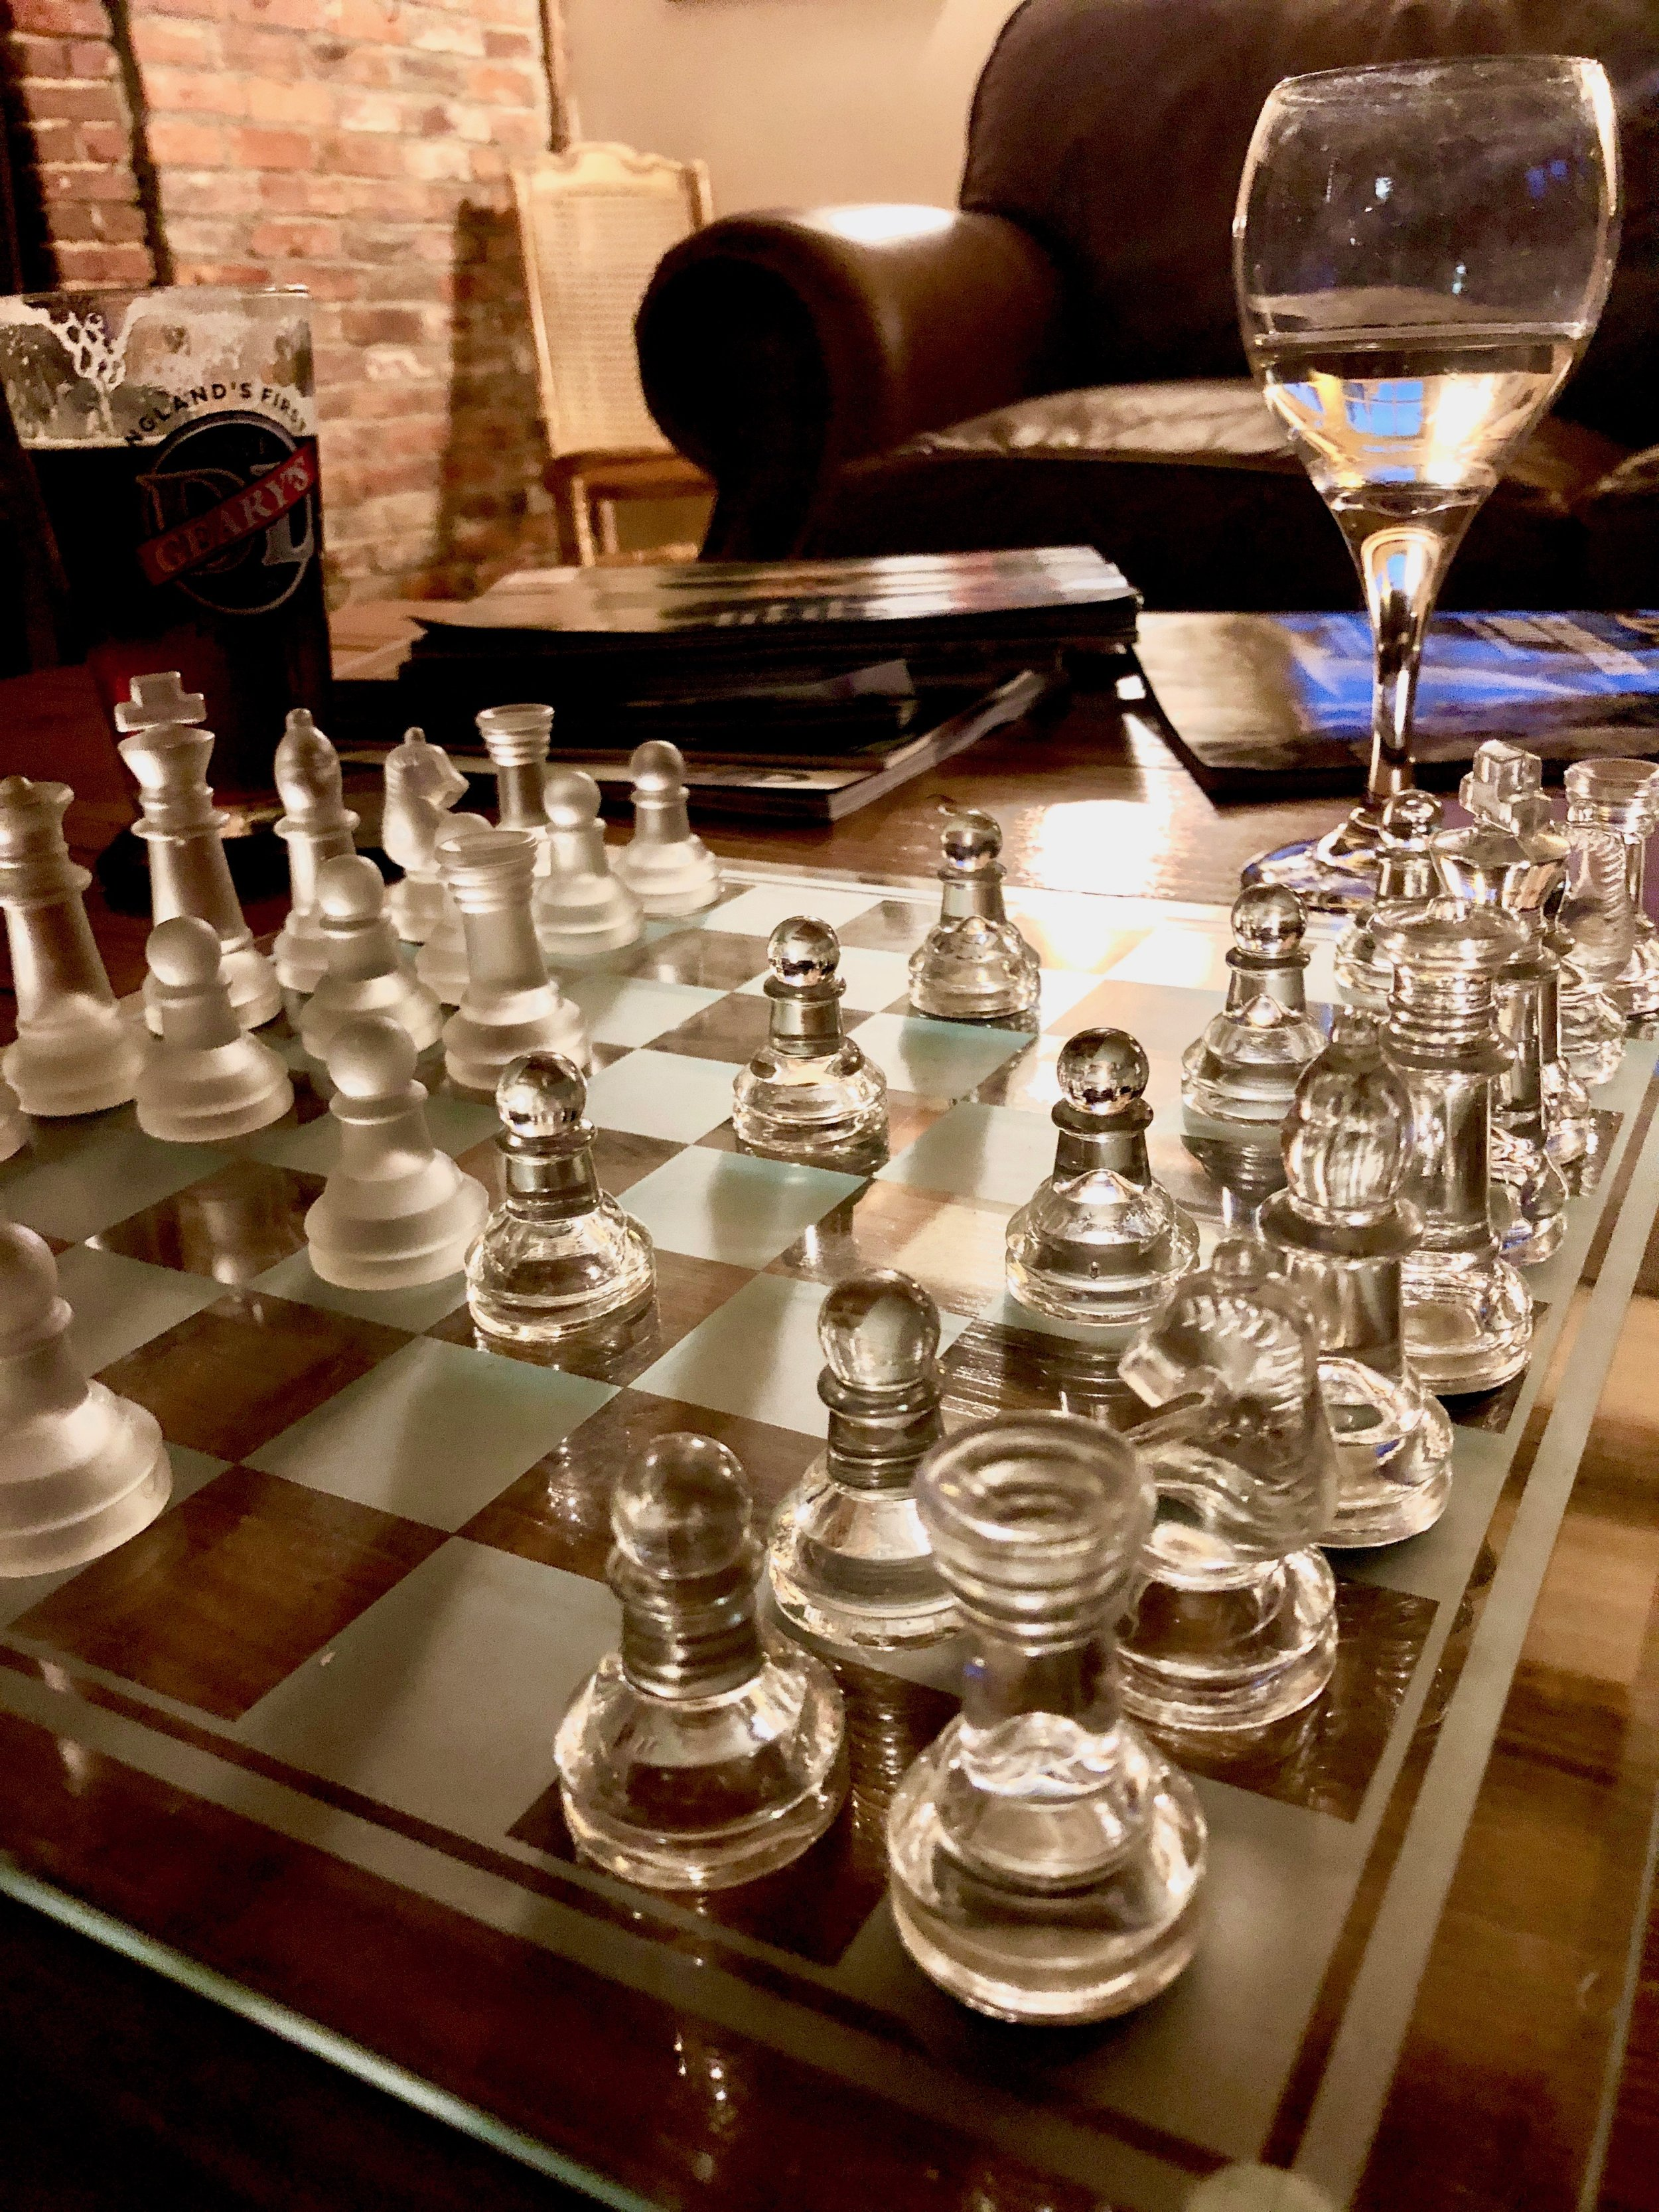 Playing chess is something my husband and I like to do on a rainy night or when we just want to relax. Having played chess all over the world during our travels, I have to admit, playing with  this glass chess set  was a lot of fun since I am used to using wood, plastic, or metal.